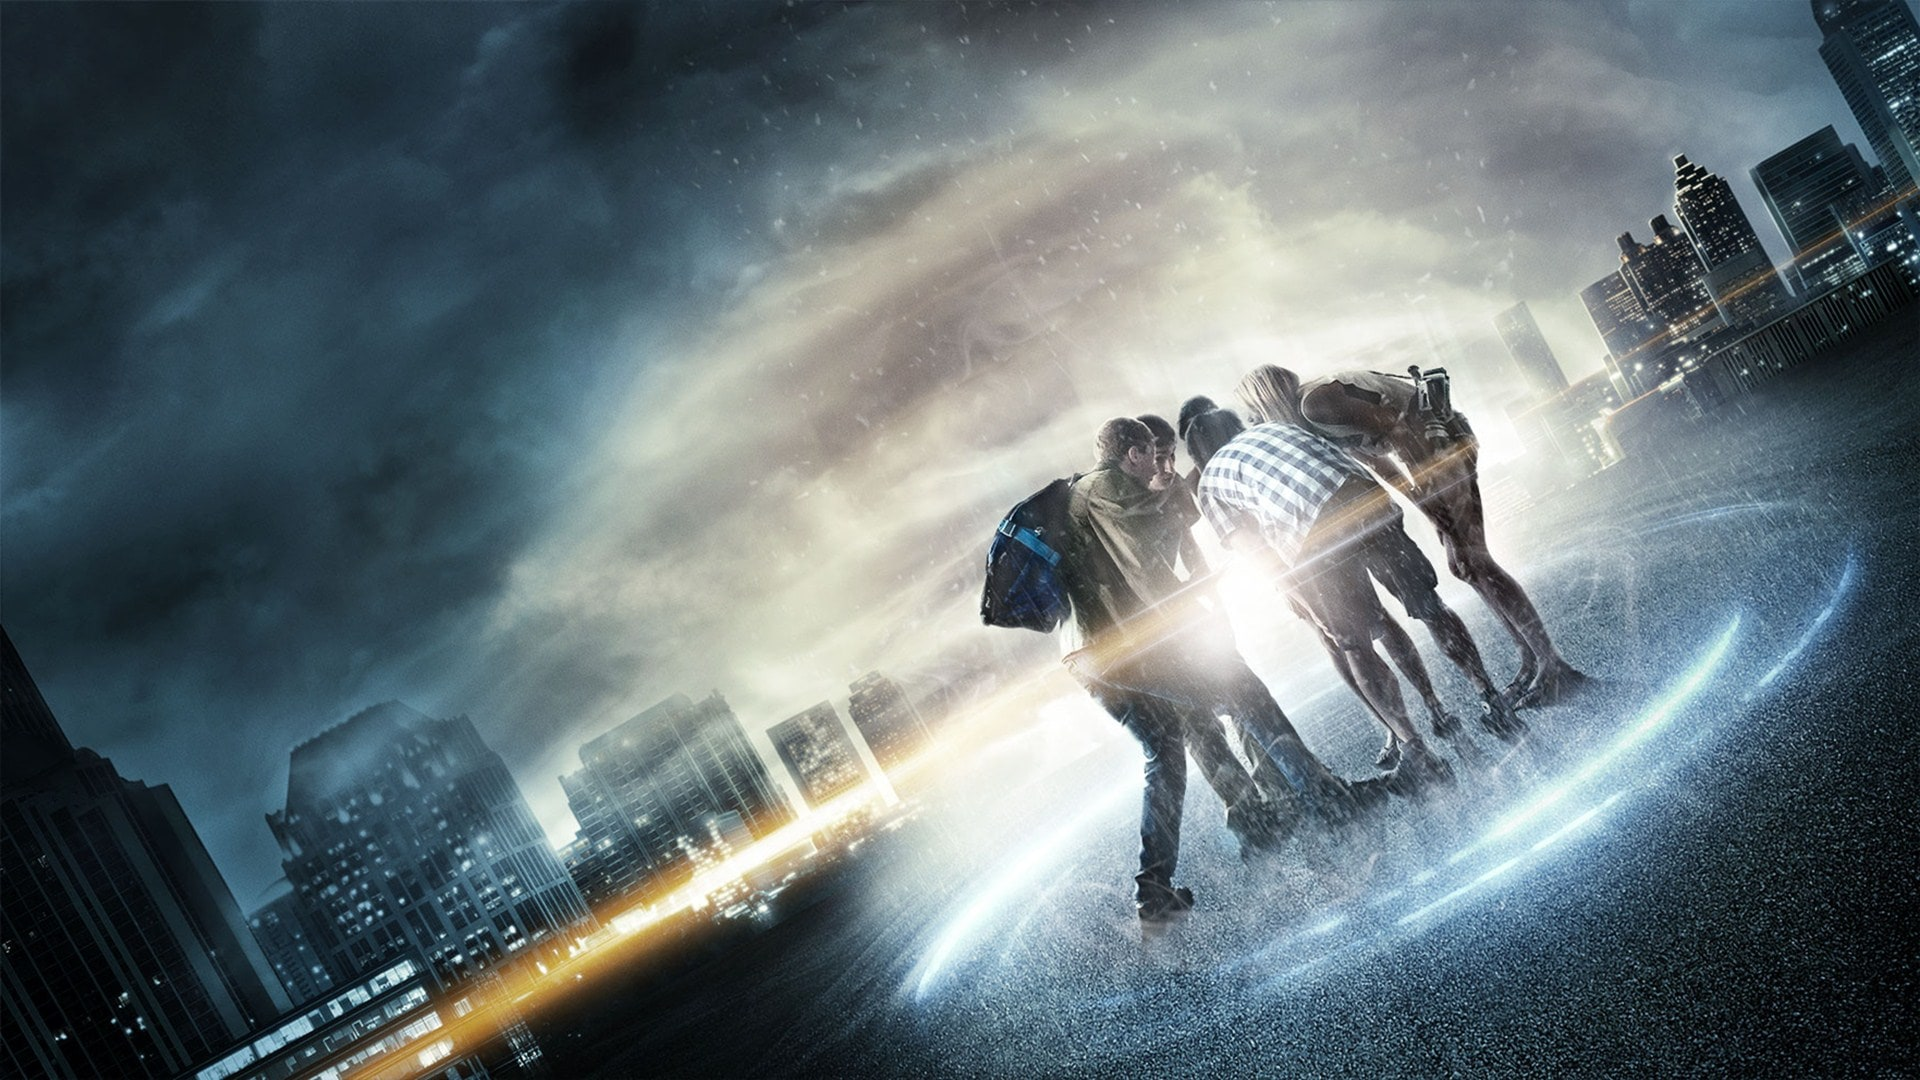 Project Almanac Wallpapers